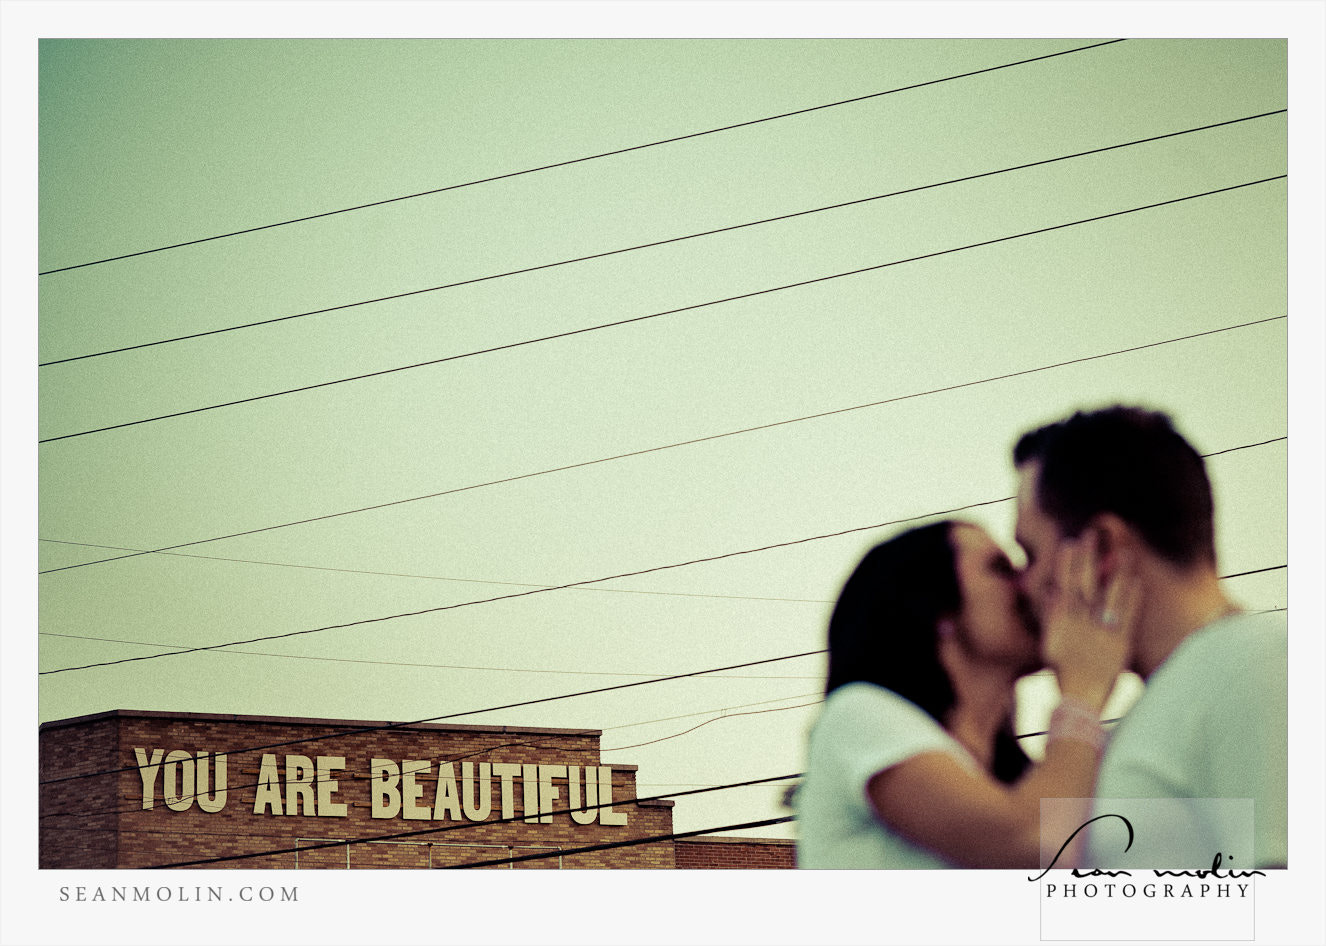 Photograph You Are Beautiful by Sean Molin on 500px